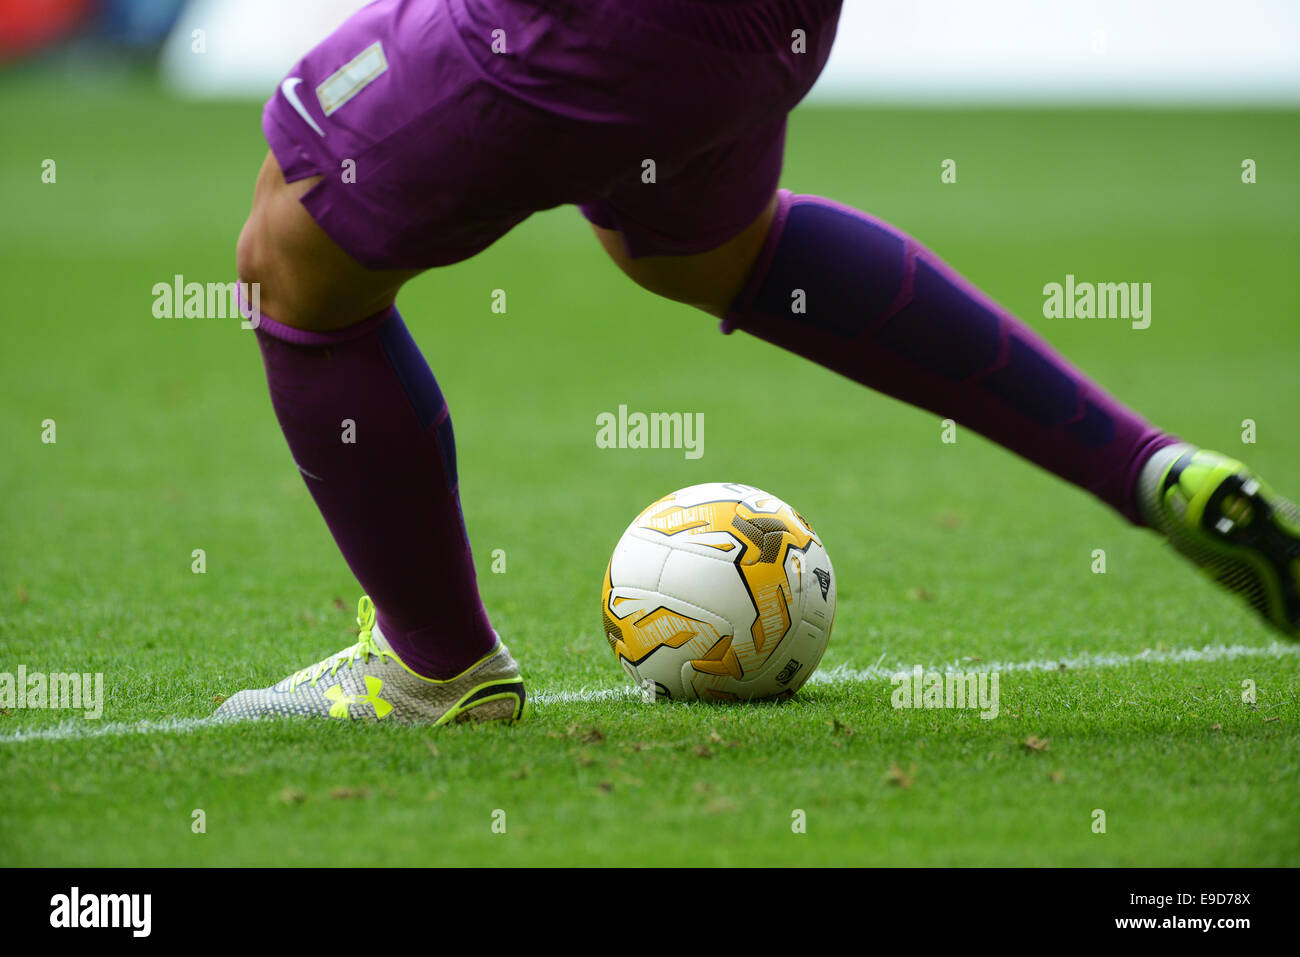 Footballer kicking professional Mitre football ball - Stock Image